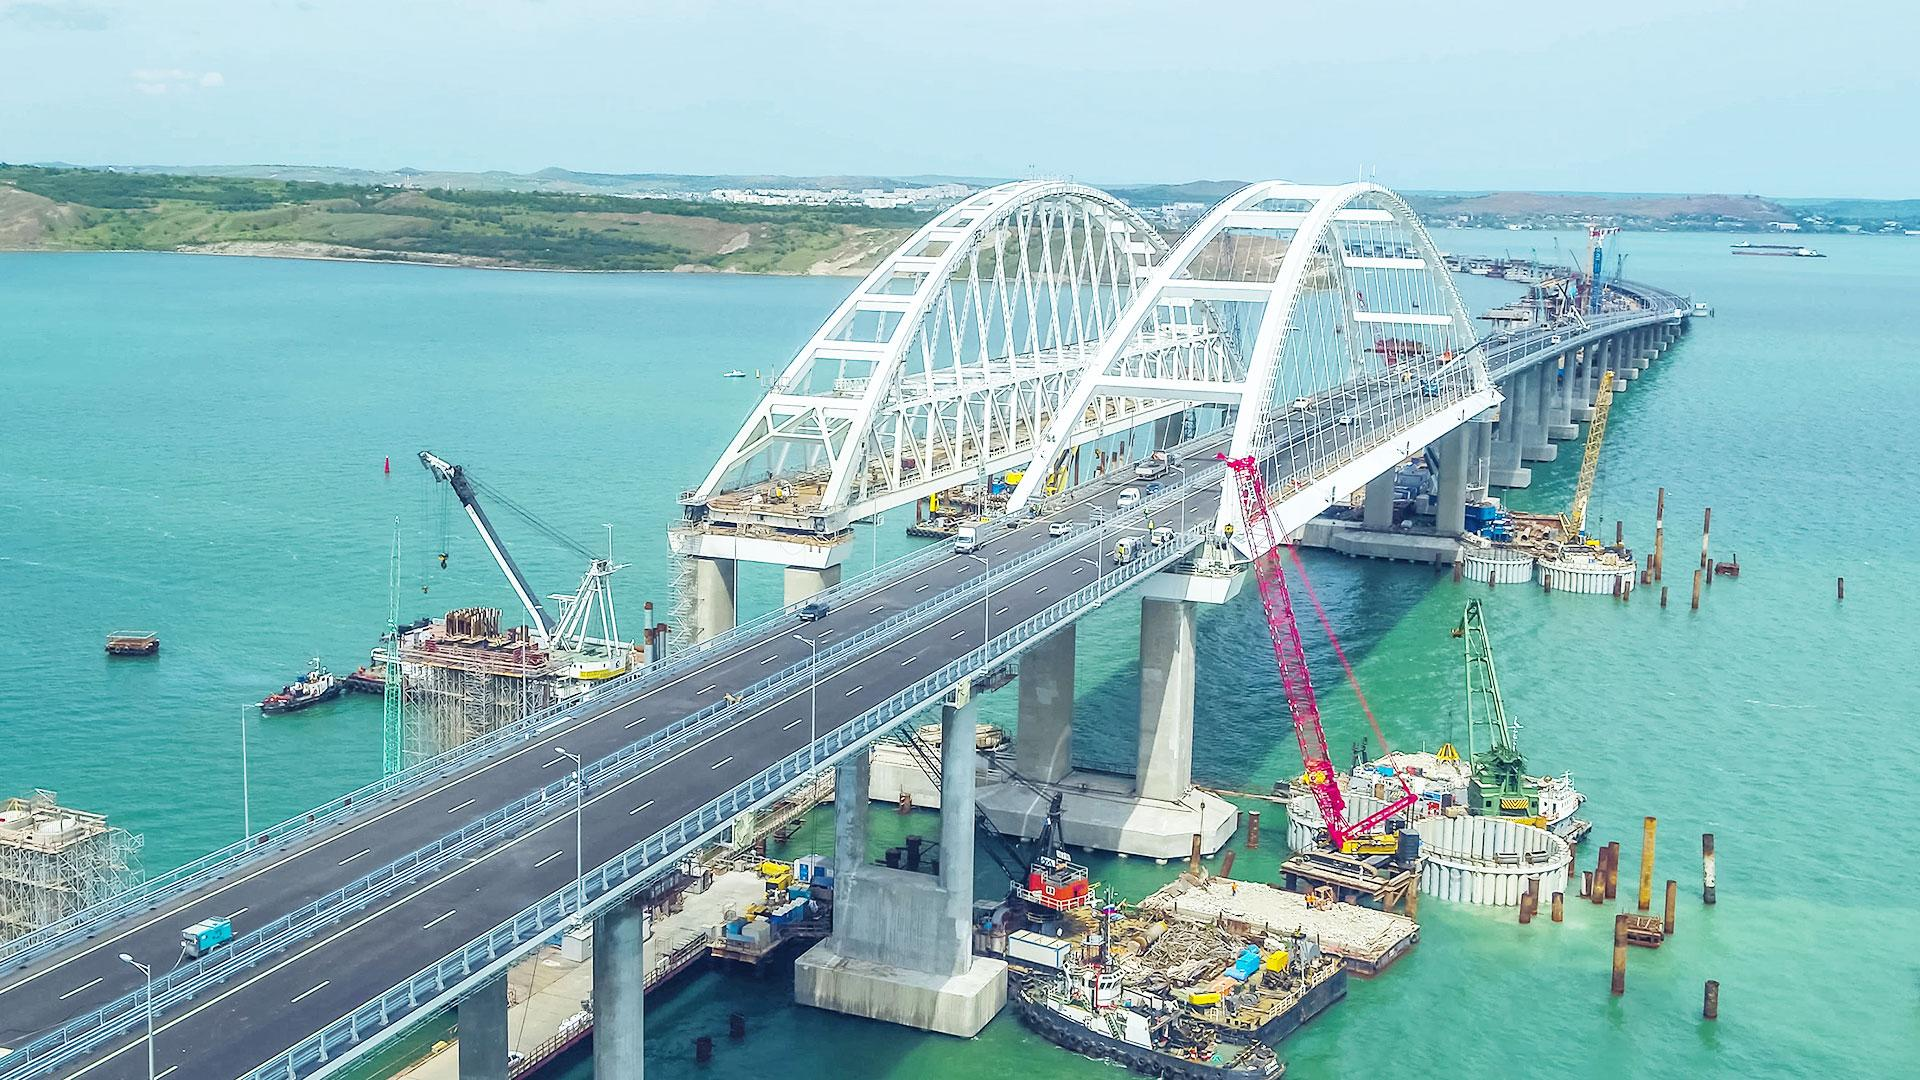 Crimean_Bridge_1.jpg